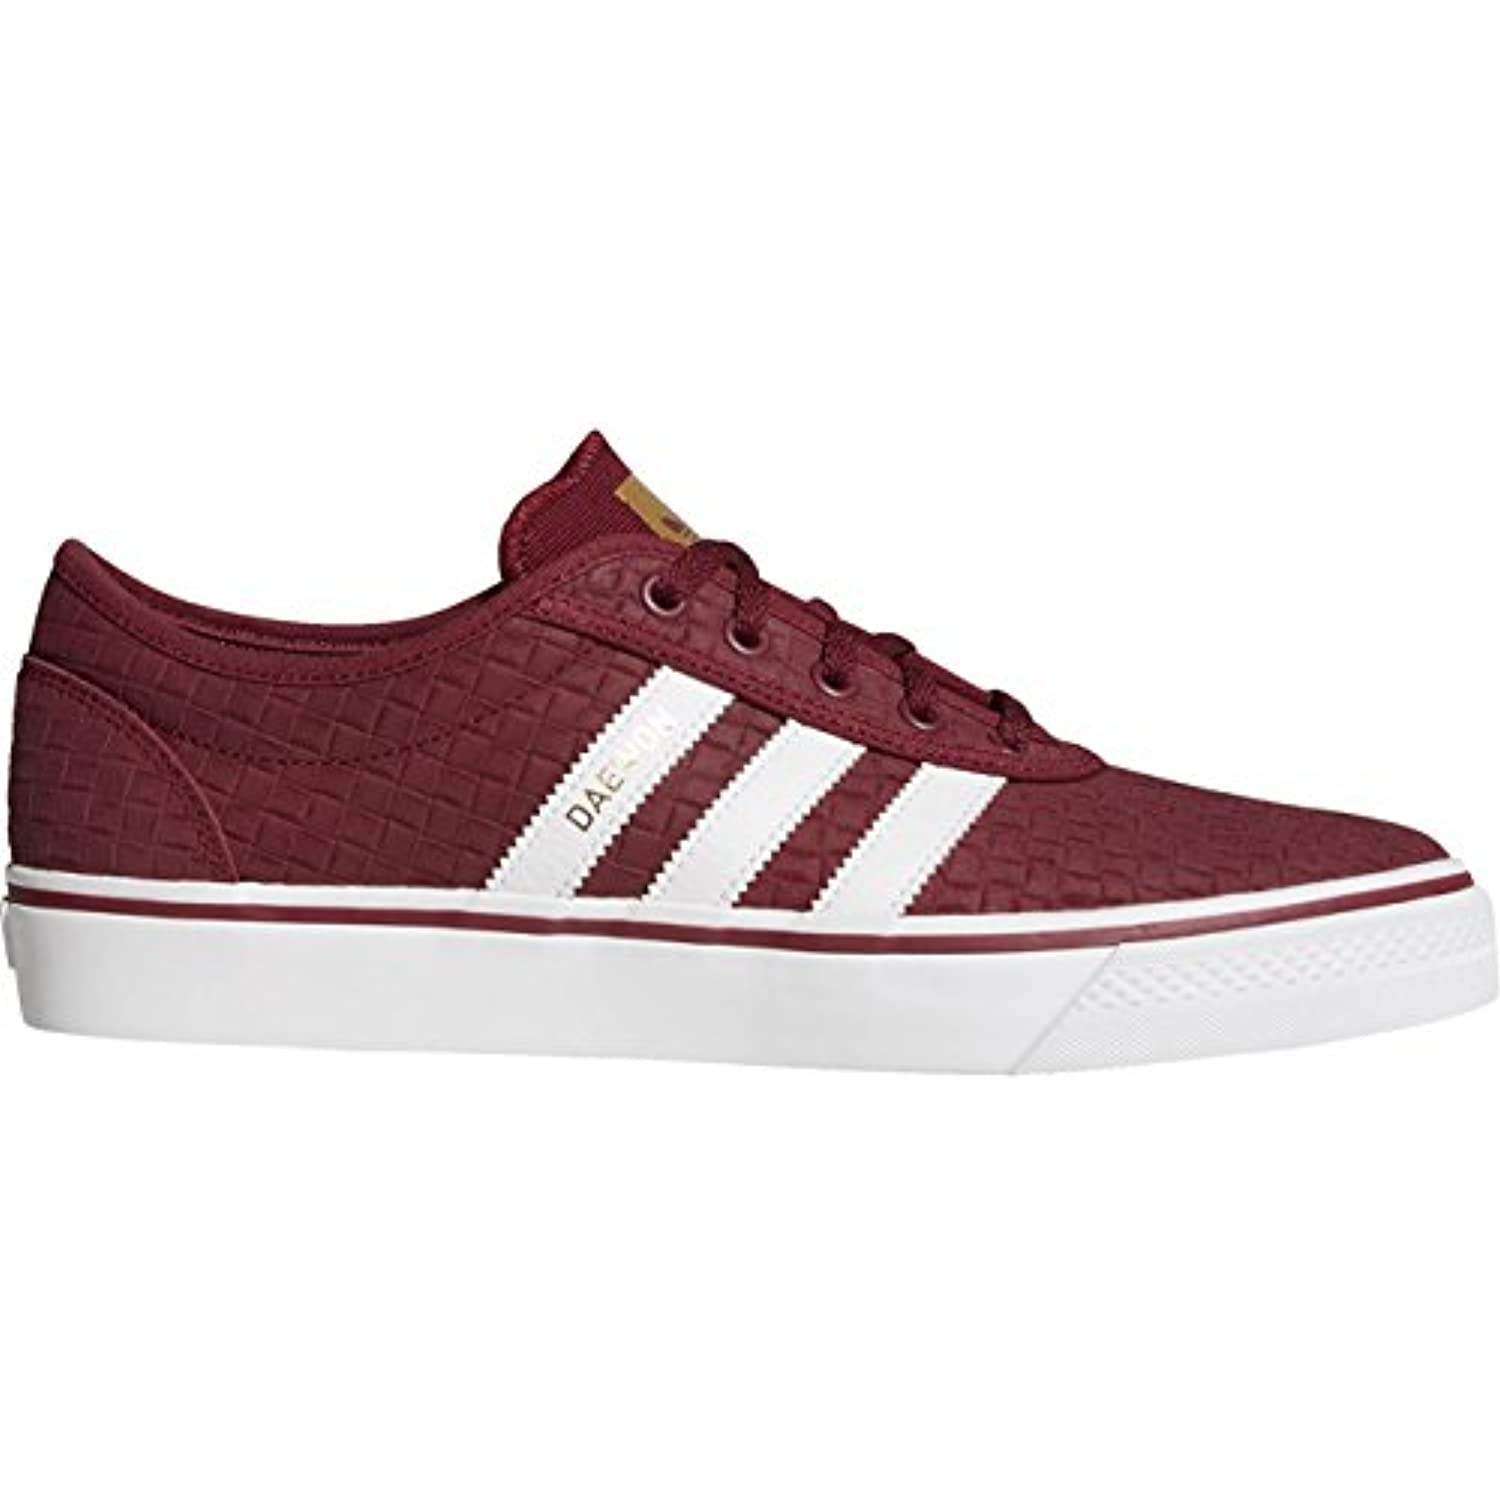 De Chaussures Fitness Ease Adidas Homme Adi B078xfxj6c qUwtaz0